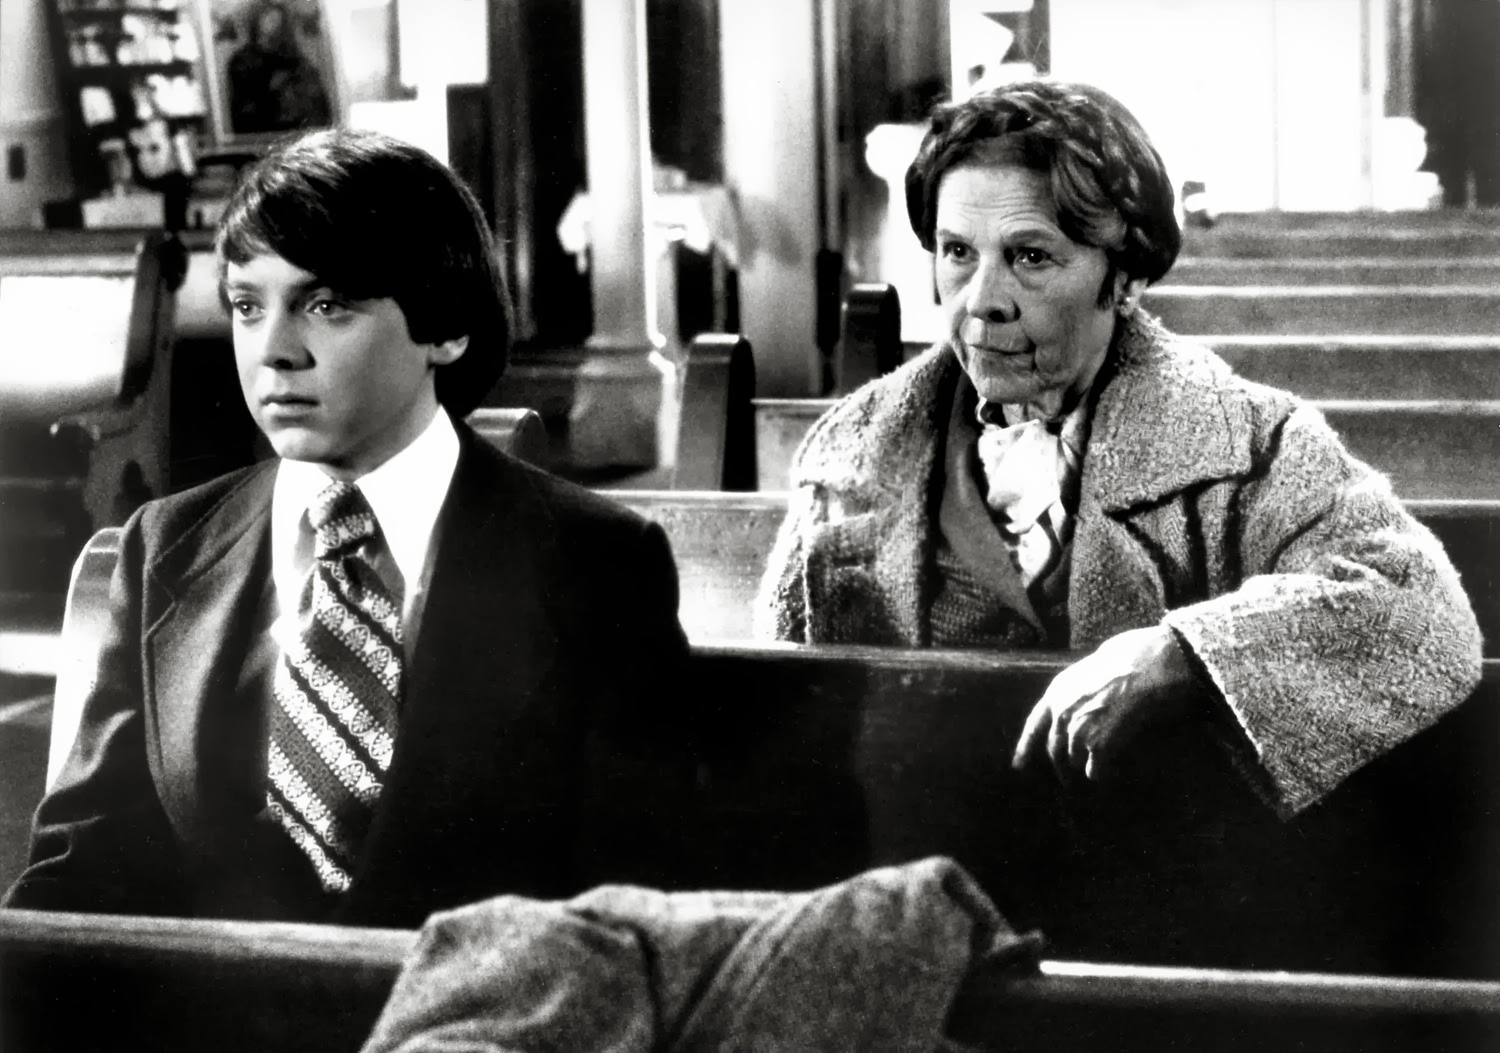 Harold and Maud - Bud Cort and Ruth Gordon in Hal Ashby's 1971 classic in the dark funeral humour category